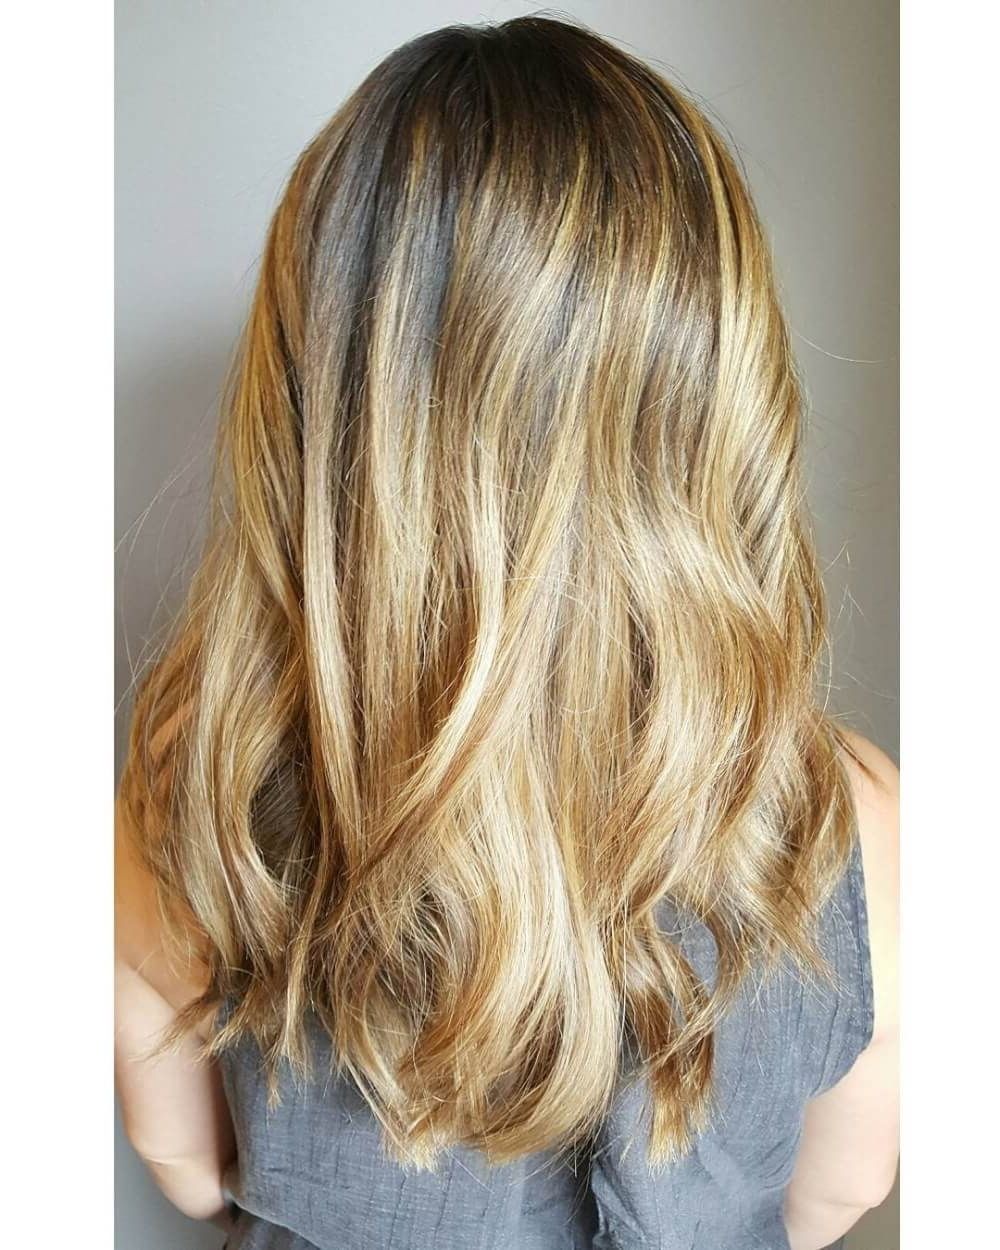 Fashionable Buttery Highlights Blonde Hairstyles For 38 Top Blonde Highlights Of 2018 – Platinum, Ash, Dirty, Honey & Dark (View 9 of 20)